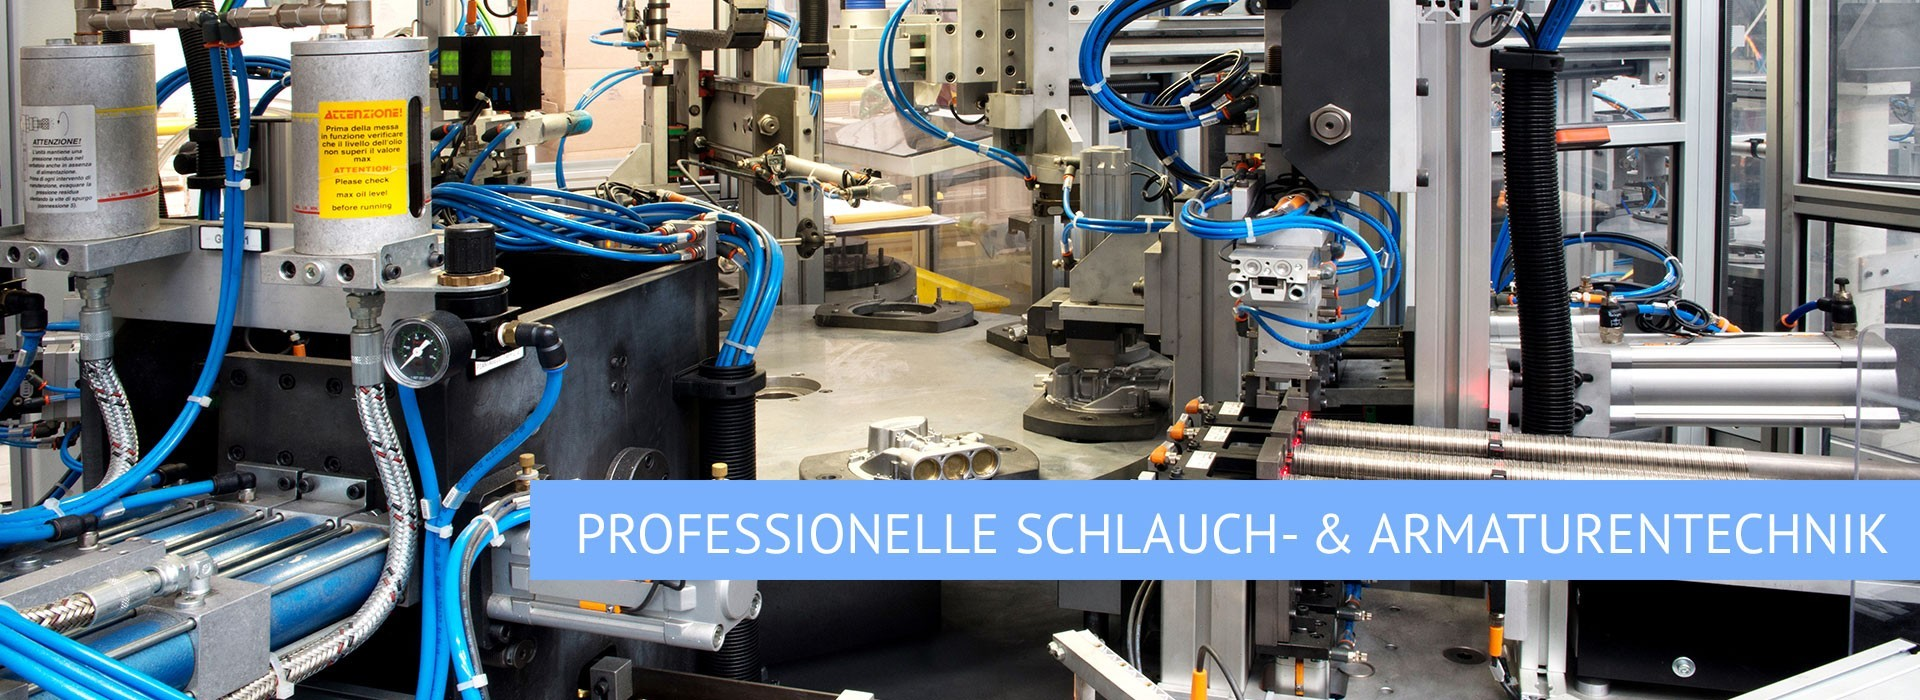 Industrieanlage mit Text